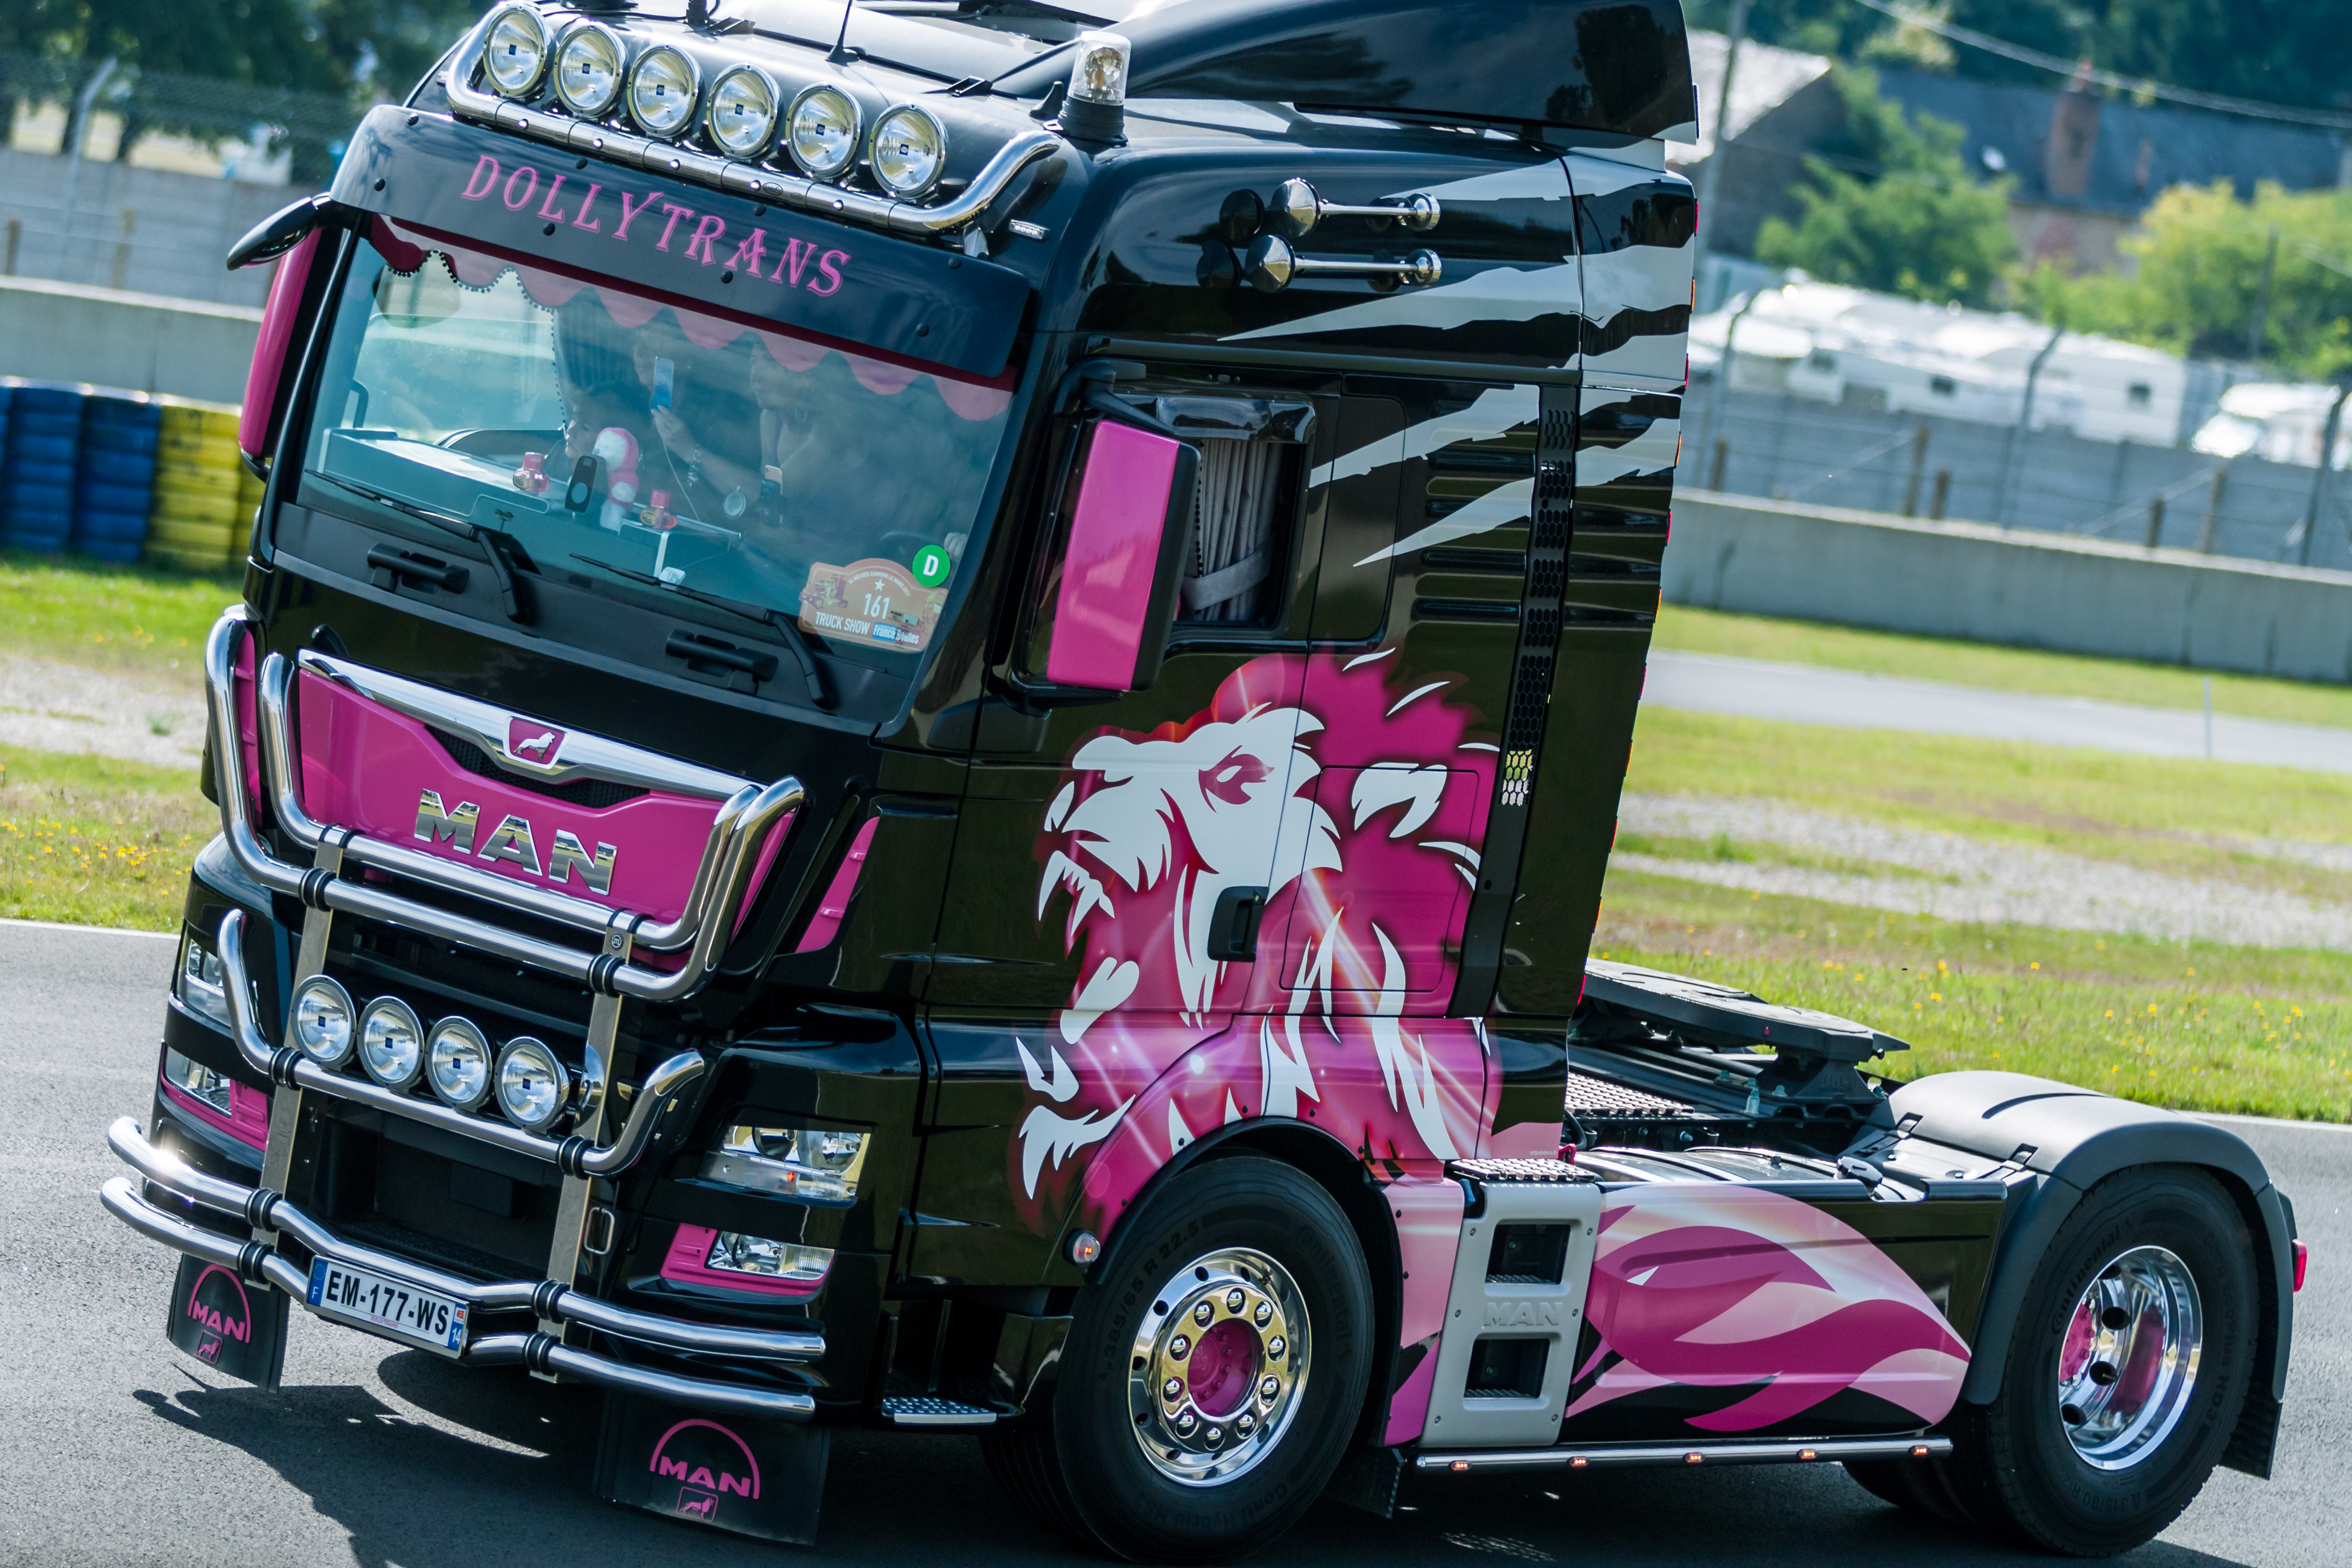 MAN Truck Pictures & Logo HD Wallpapers - TGX Tuning Show Galleries